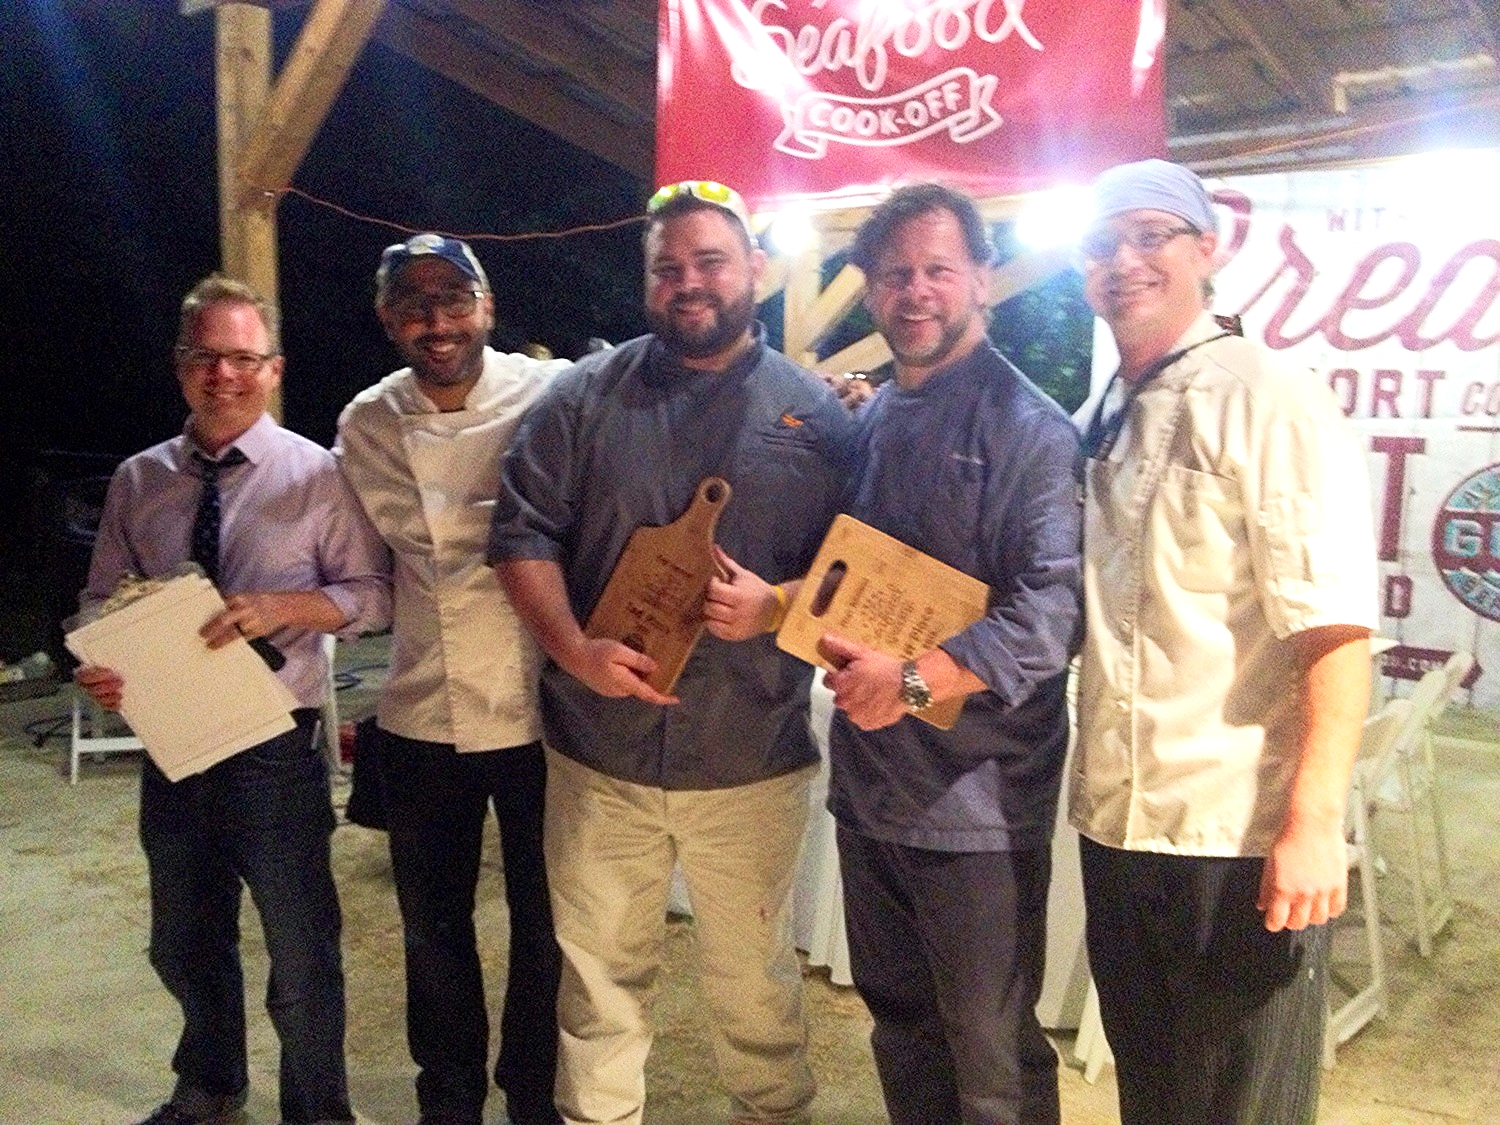 From left: Alabama Gulf Seafood Chairman Jim Smith, Chefs Miguel Figueroa, Chef Brandon Burleson, Chef George Reis, and Chef Brody Olive at the First Annual Alabama Gulf Seafood Cook-off.